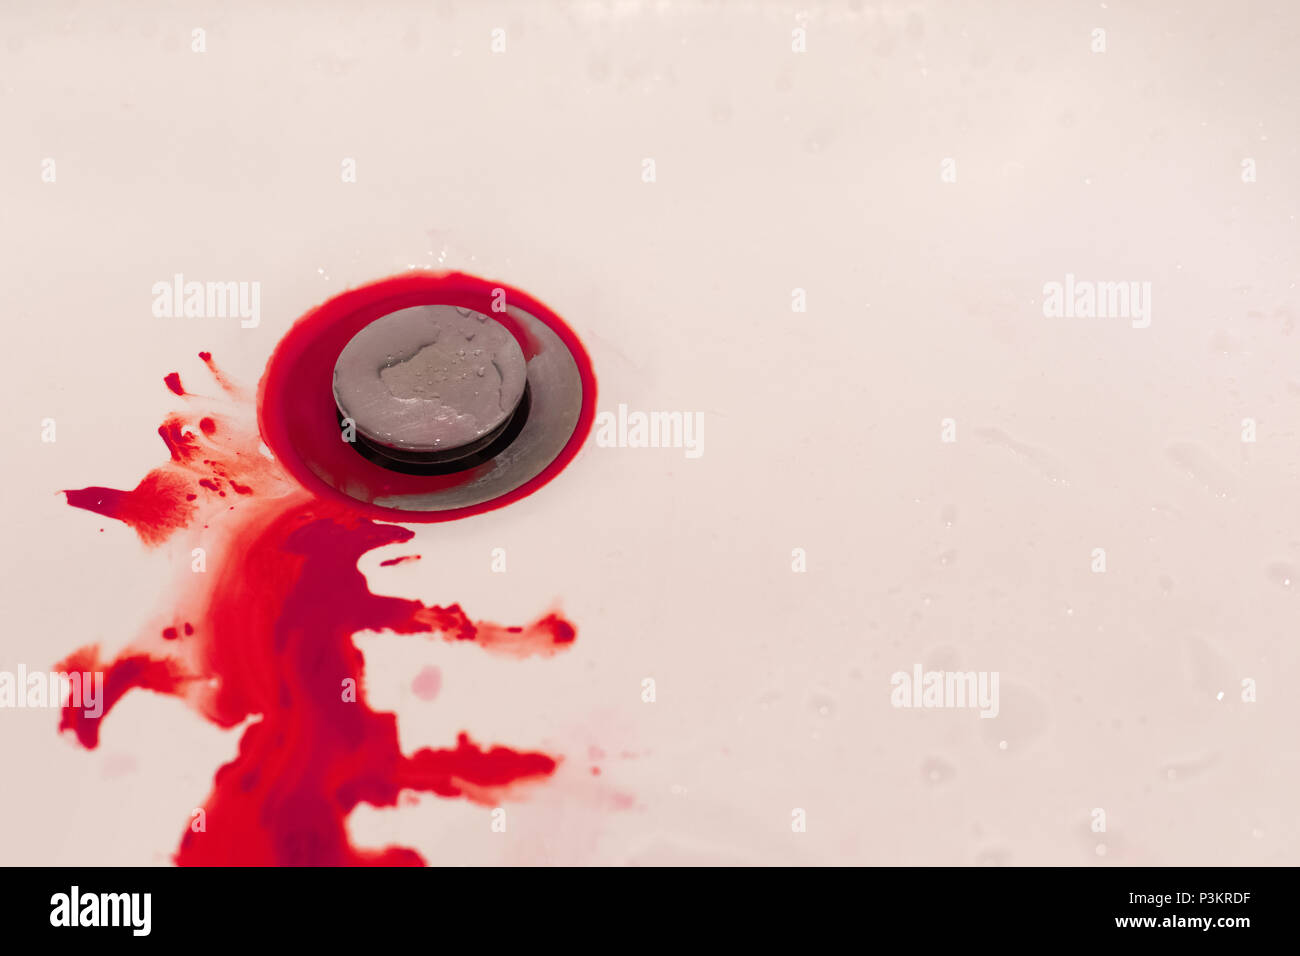 Blood sink stock photos blood sink stock images alamy for Bleeding when going to the bathroom